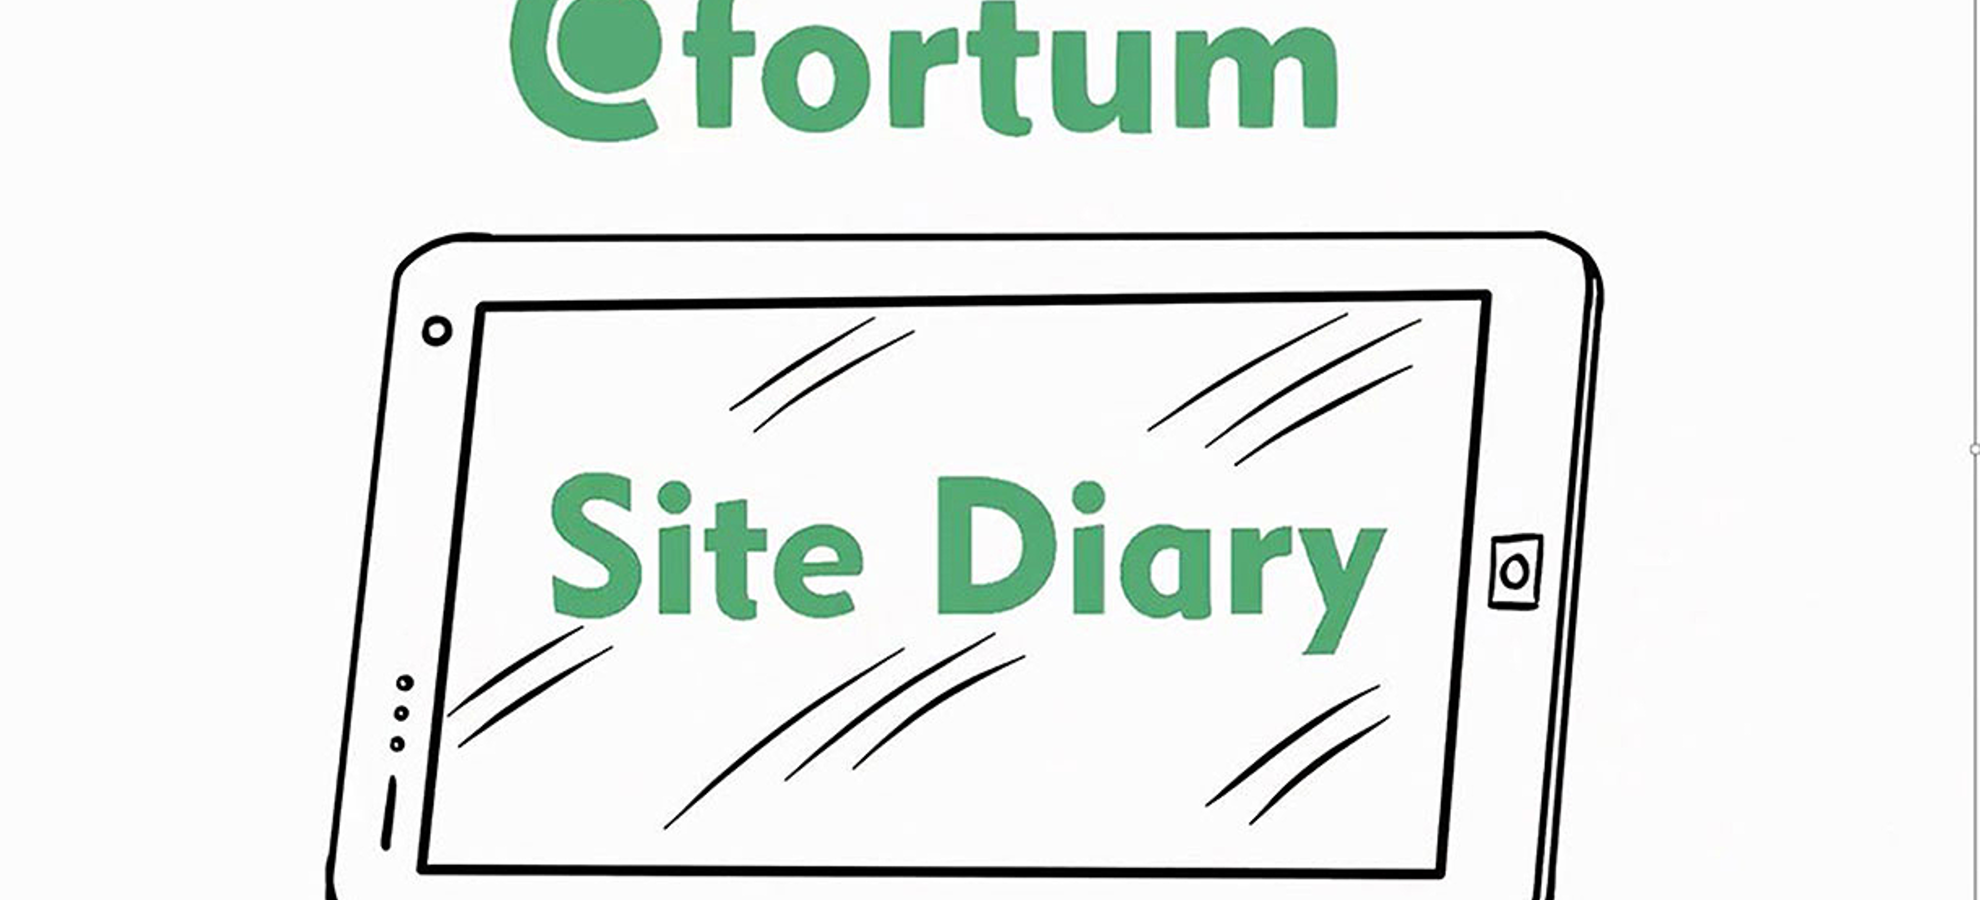 Fortum site diary cover